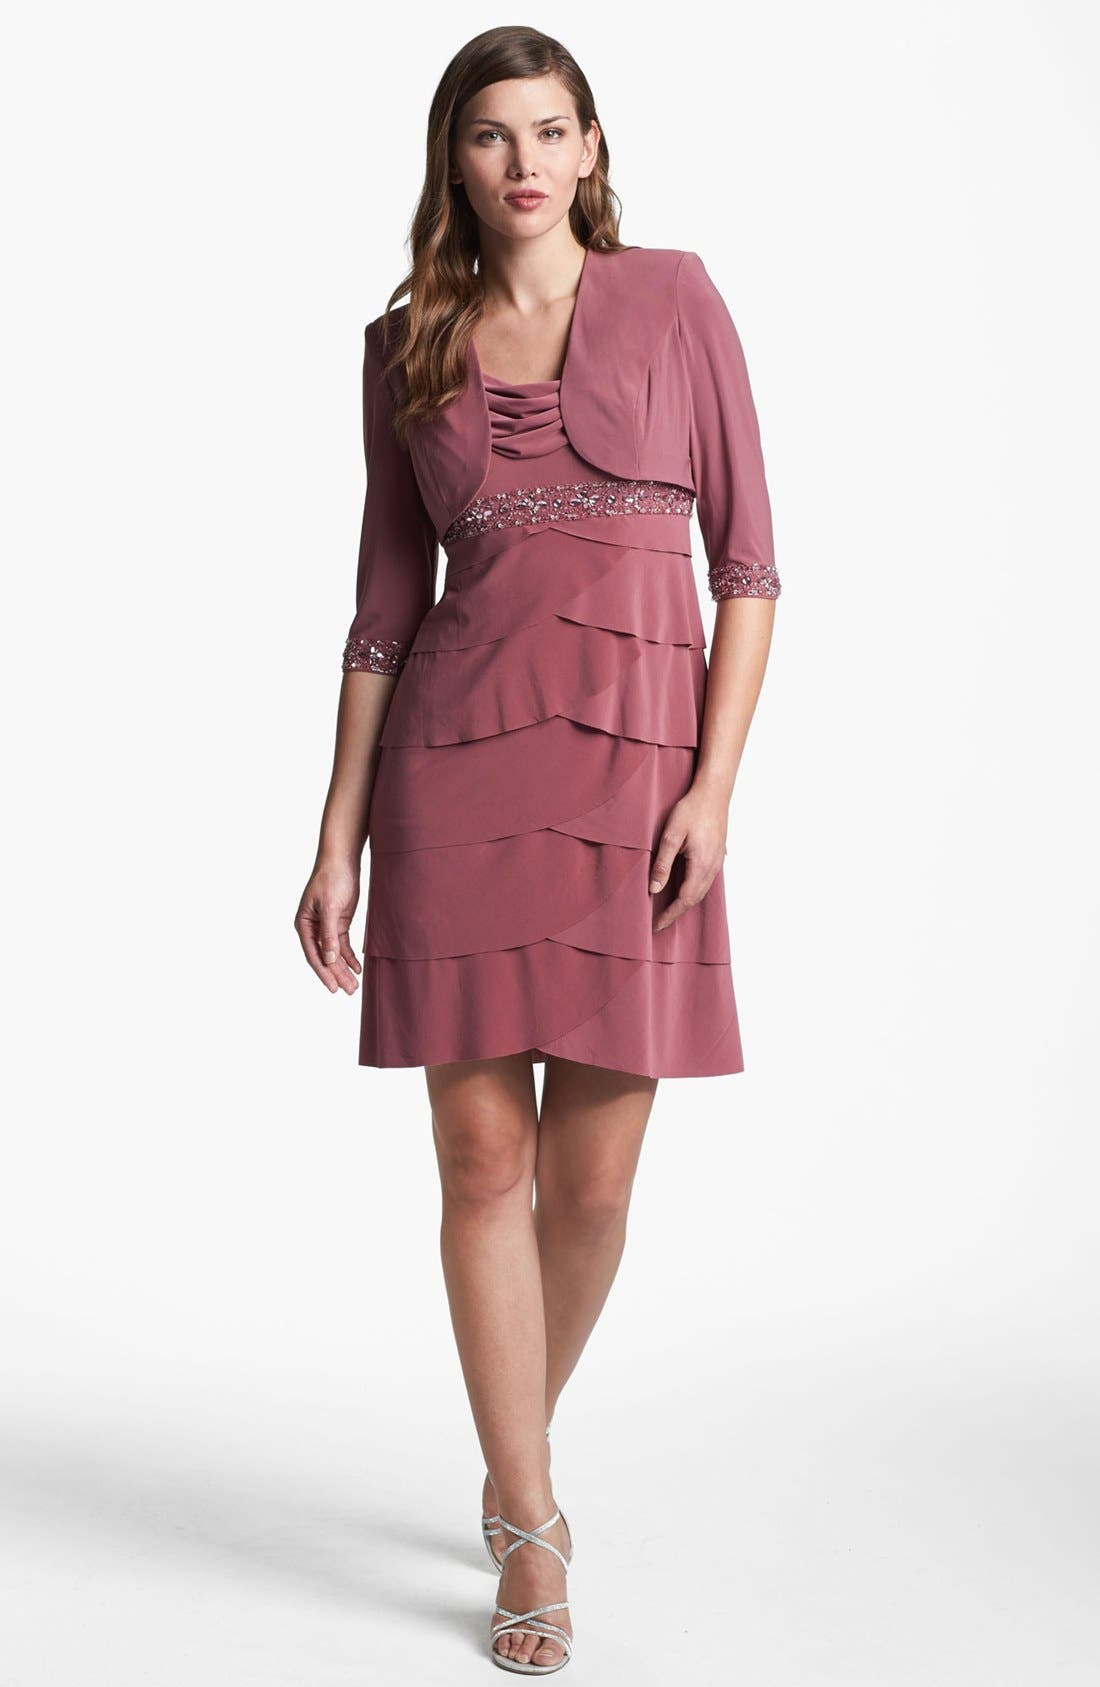 Alternate Image 1 Selected - Alex Evenings Tiered Dress & Bolero (Petite)